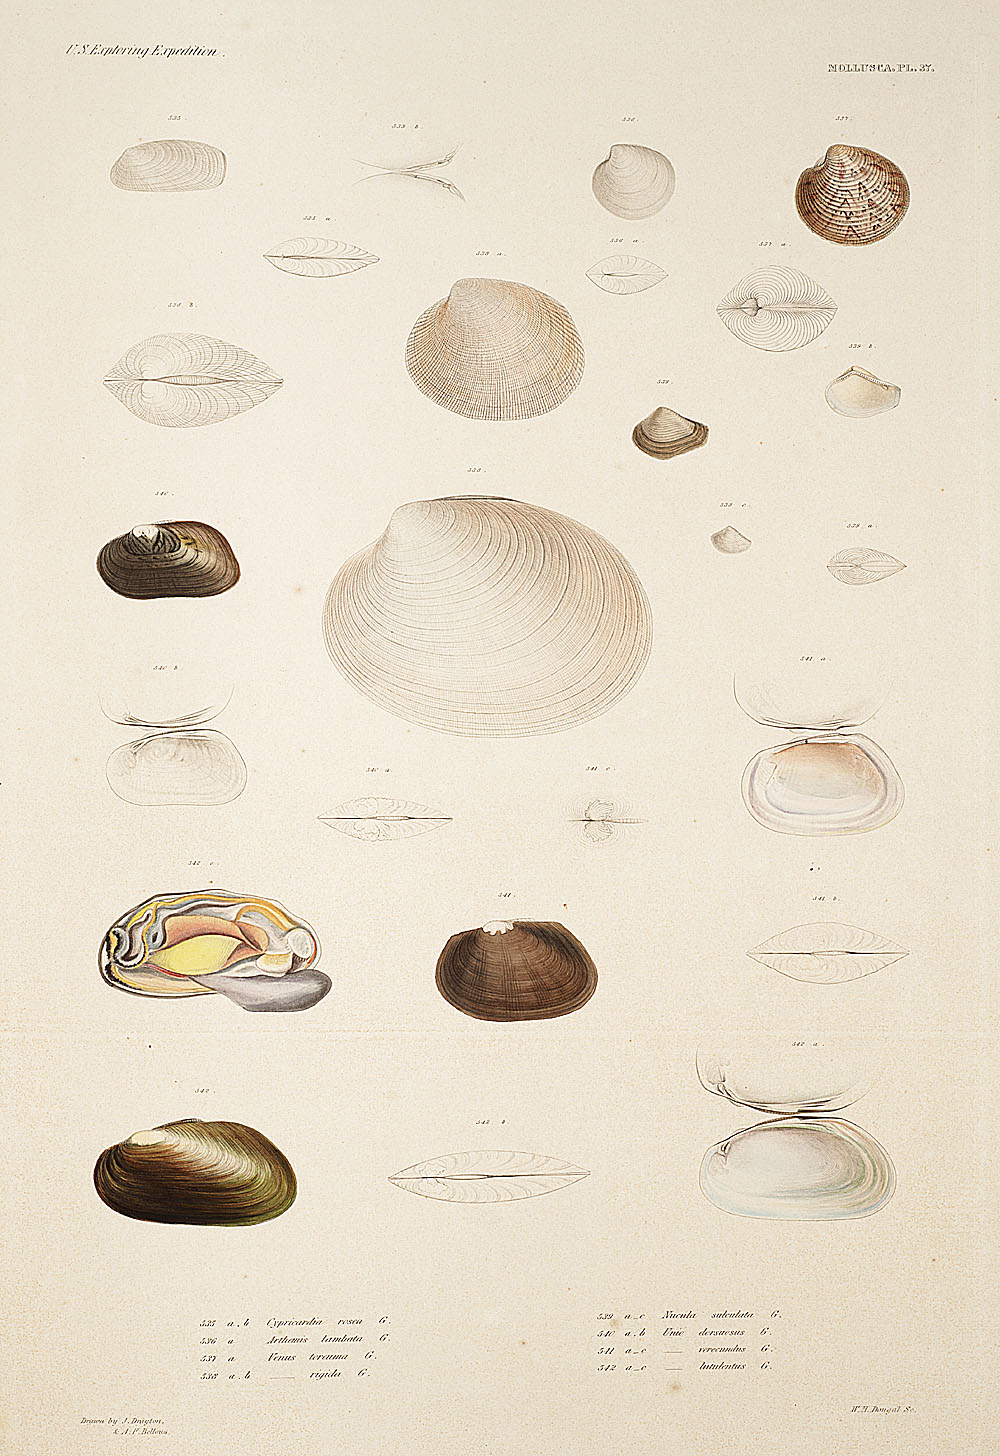 Mollusca, Pl. 37,  Image number:sil19-18-095b